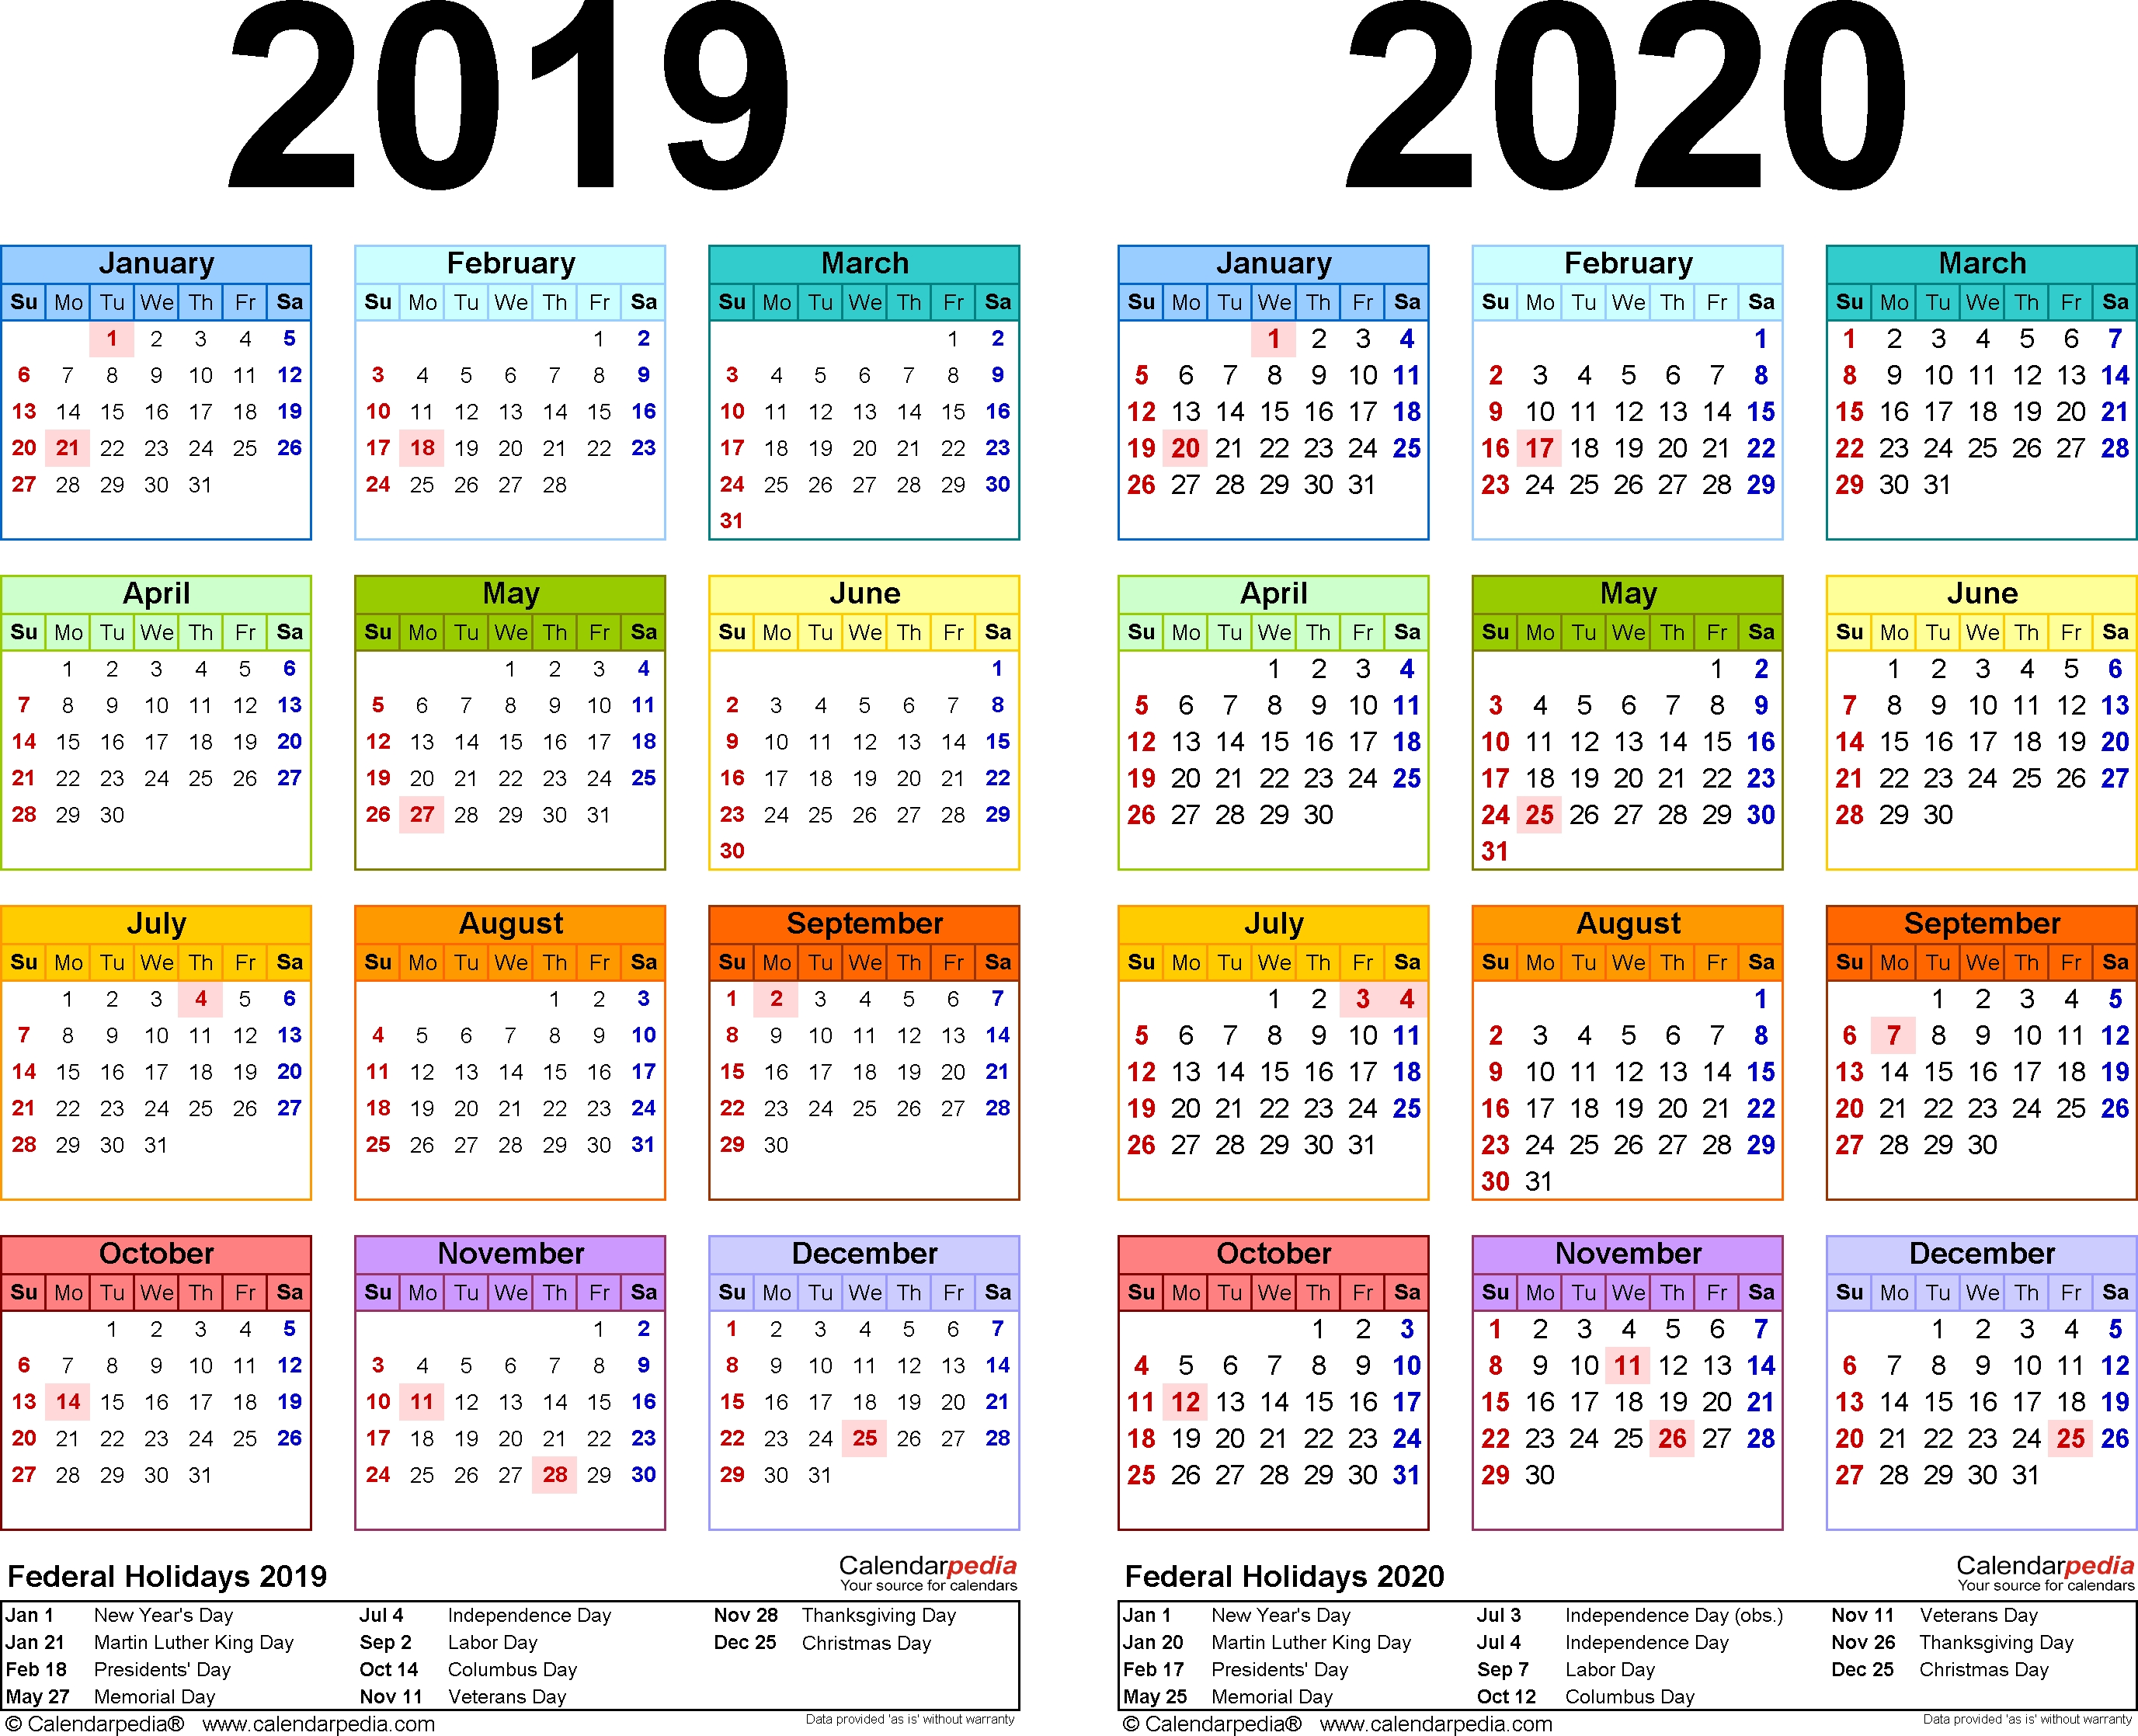 2019-2020 Calendar - Free Printable Two-Year Pdf Calendars pertaining to Printable Calendar 2019-2020  Year At A Glance